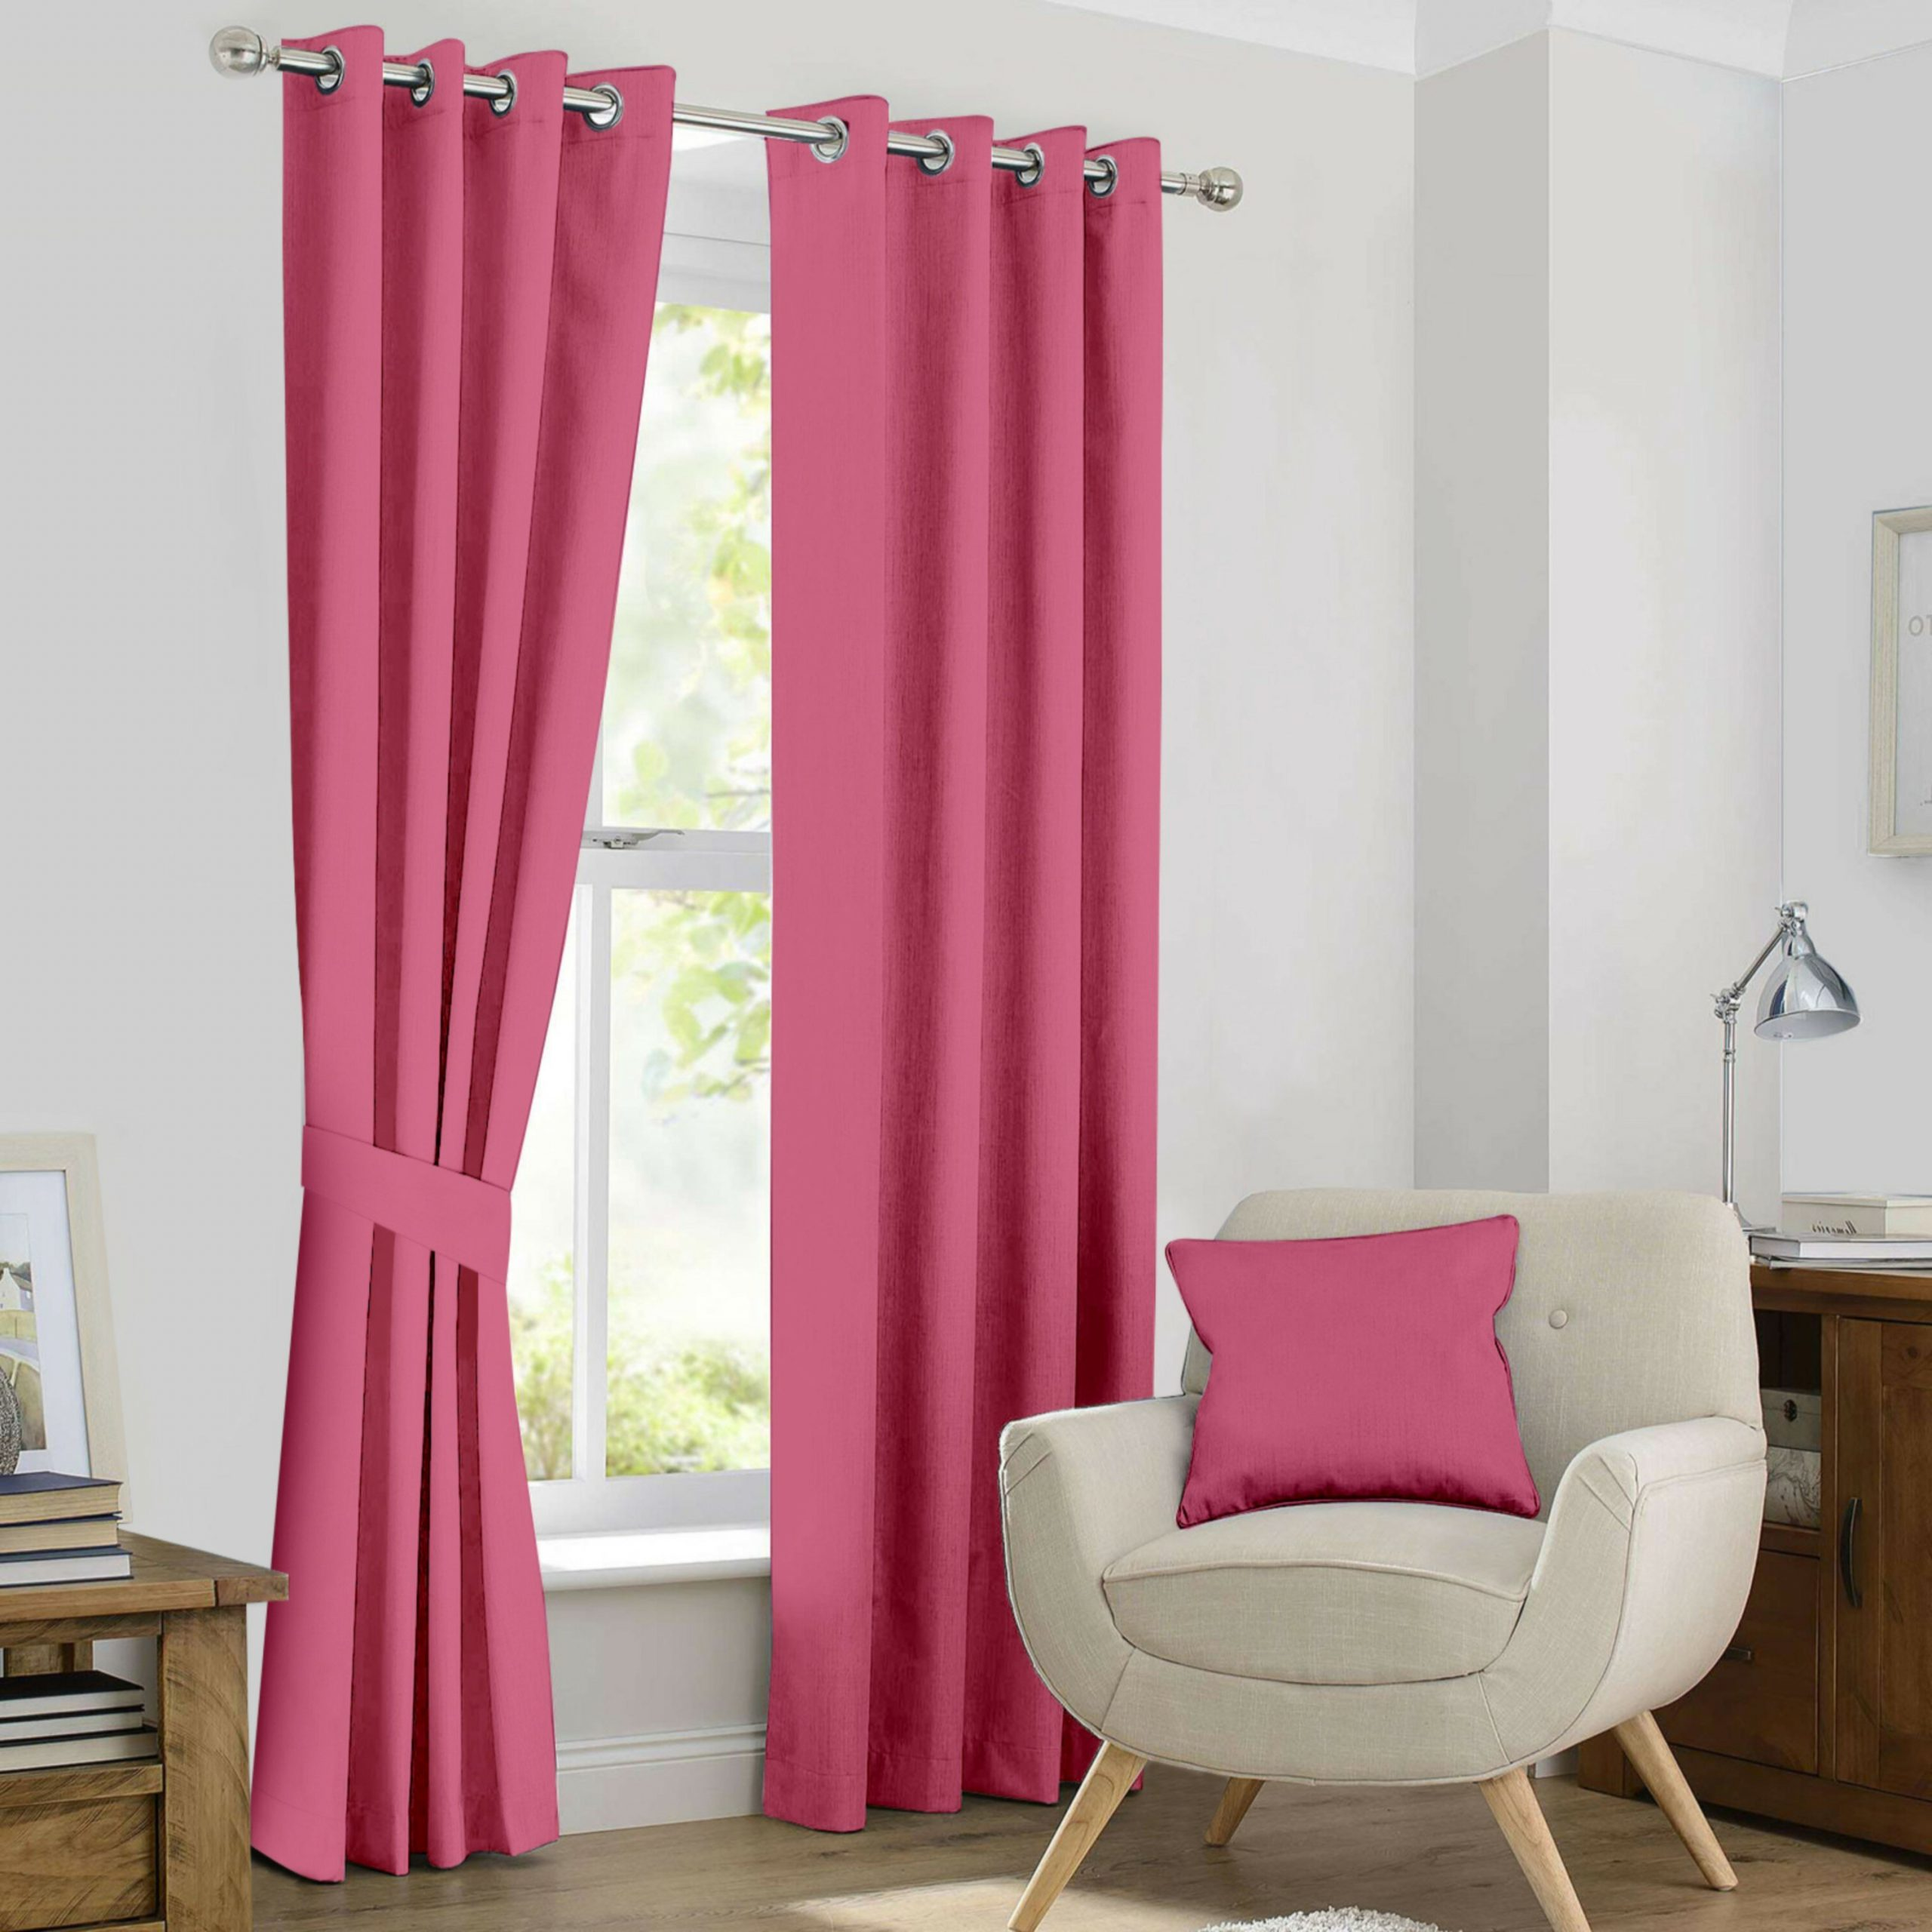 Kaylee Solid Crushed Sheer Window Curtain Pairs Pertaining To Newest Kaylee Solid Blackout Thermal Grommet Curtain Panels (View 16 of 20)